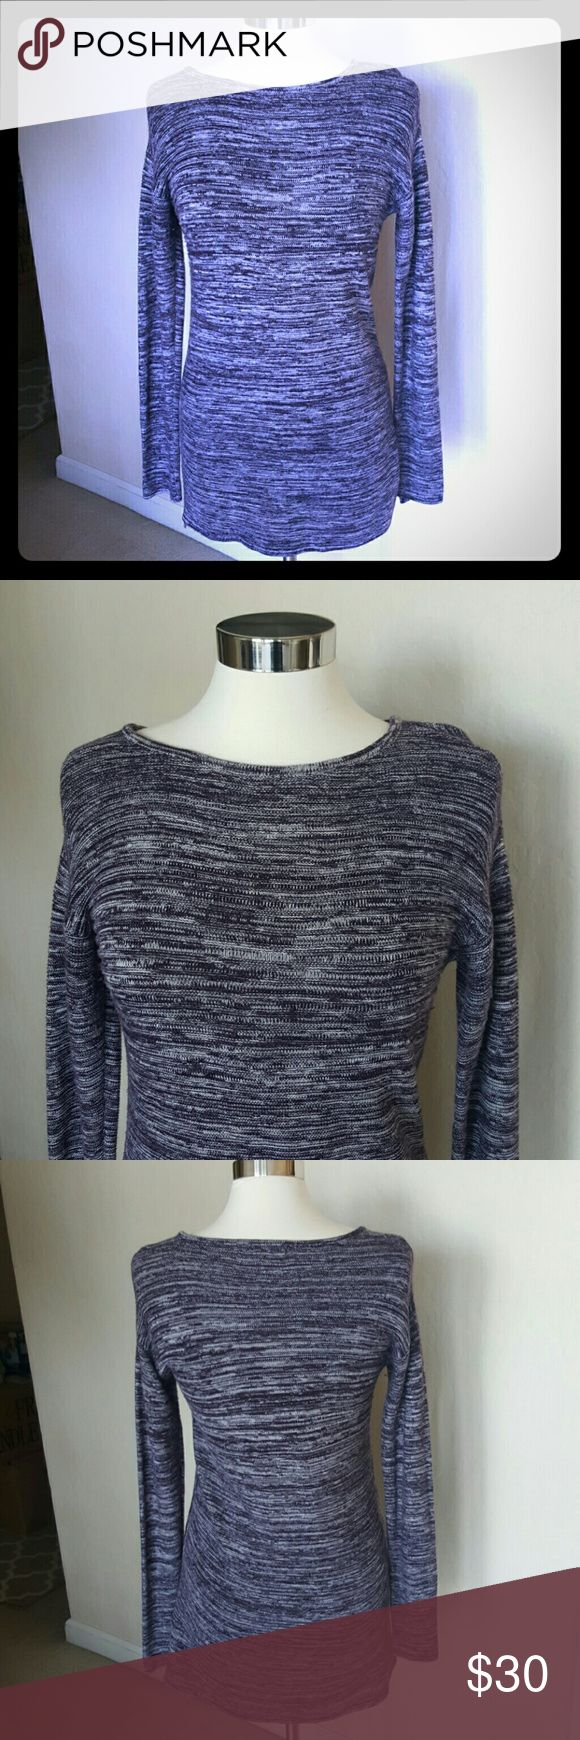 Ellen tracy sweater Cozy ellen tracy cotton/acrylic sweater. Purple/white fabric. Measures approx 29 inches. Great with leggings, boots or jeans. Ellen Tracy Tops Blouses